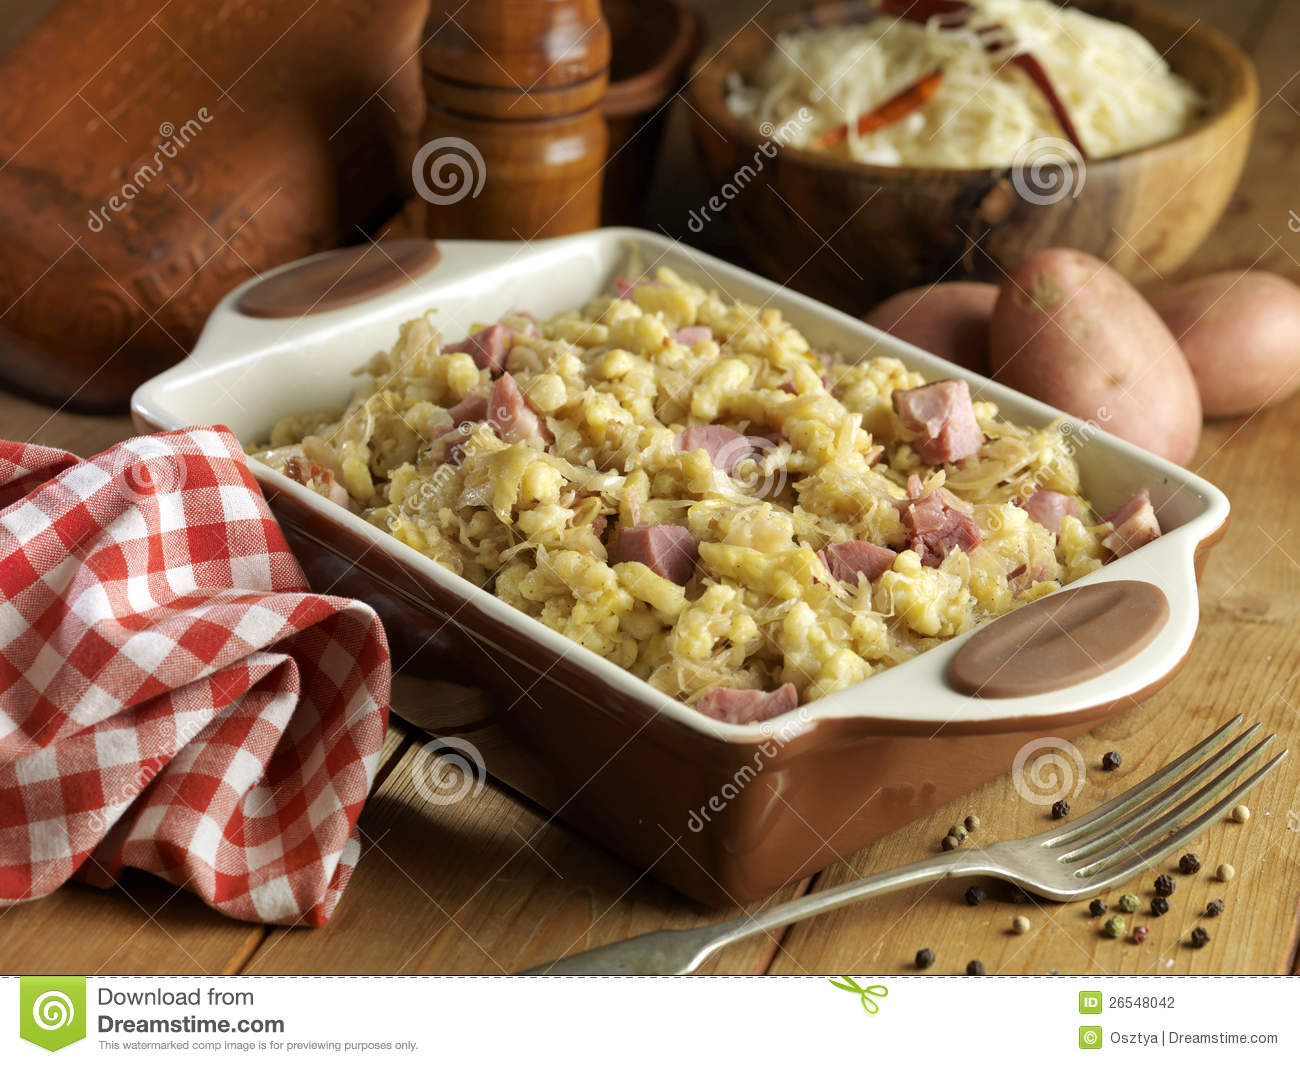 Stock Photography: Knuckle with cabbage and dumplings